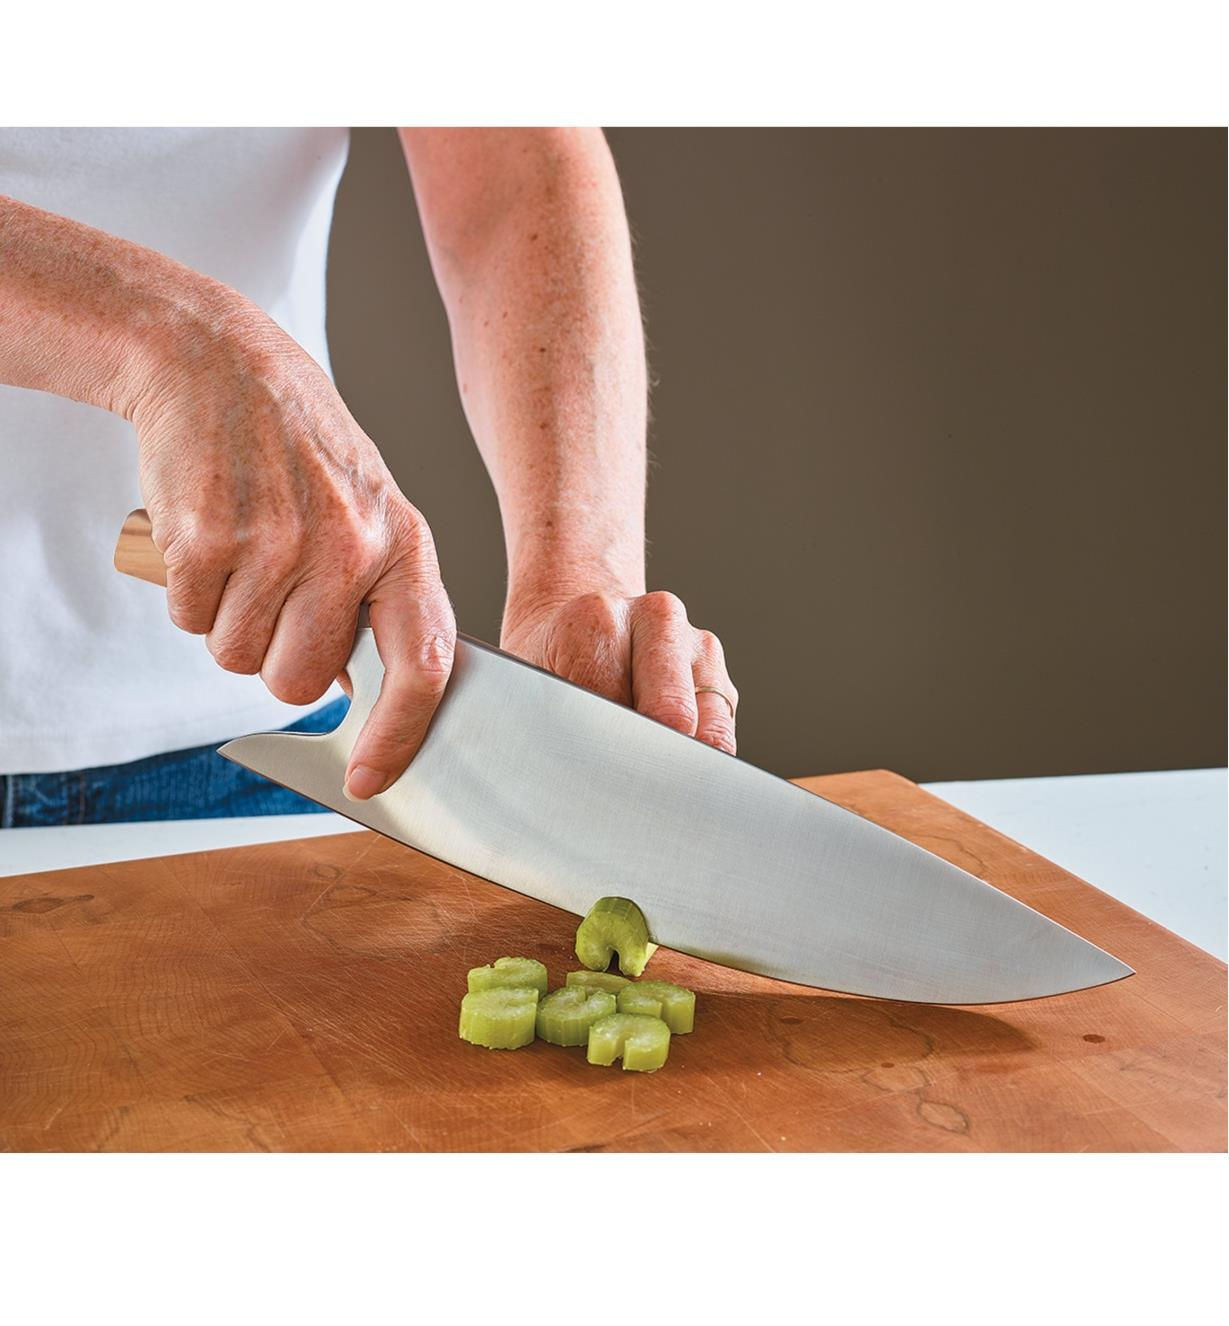 Güde Chef's Knife used to chop celery